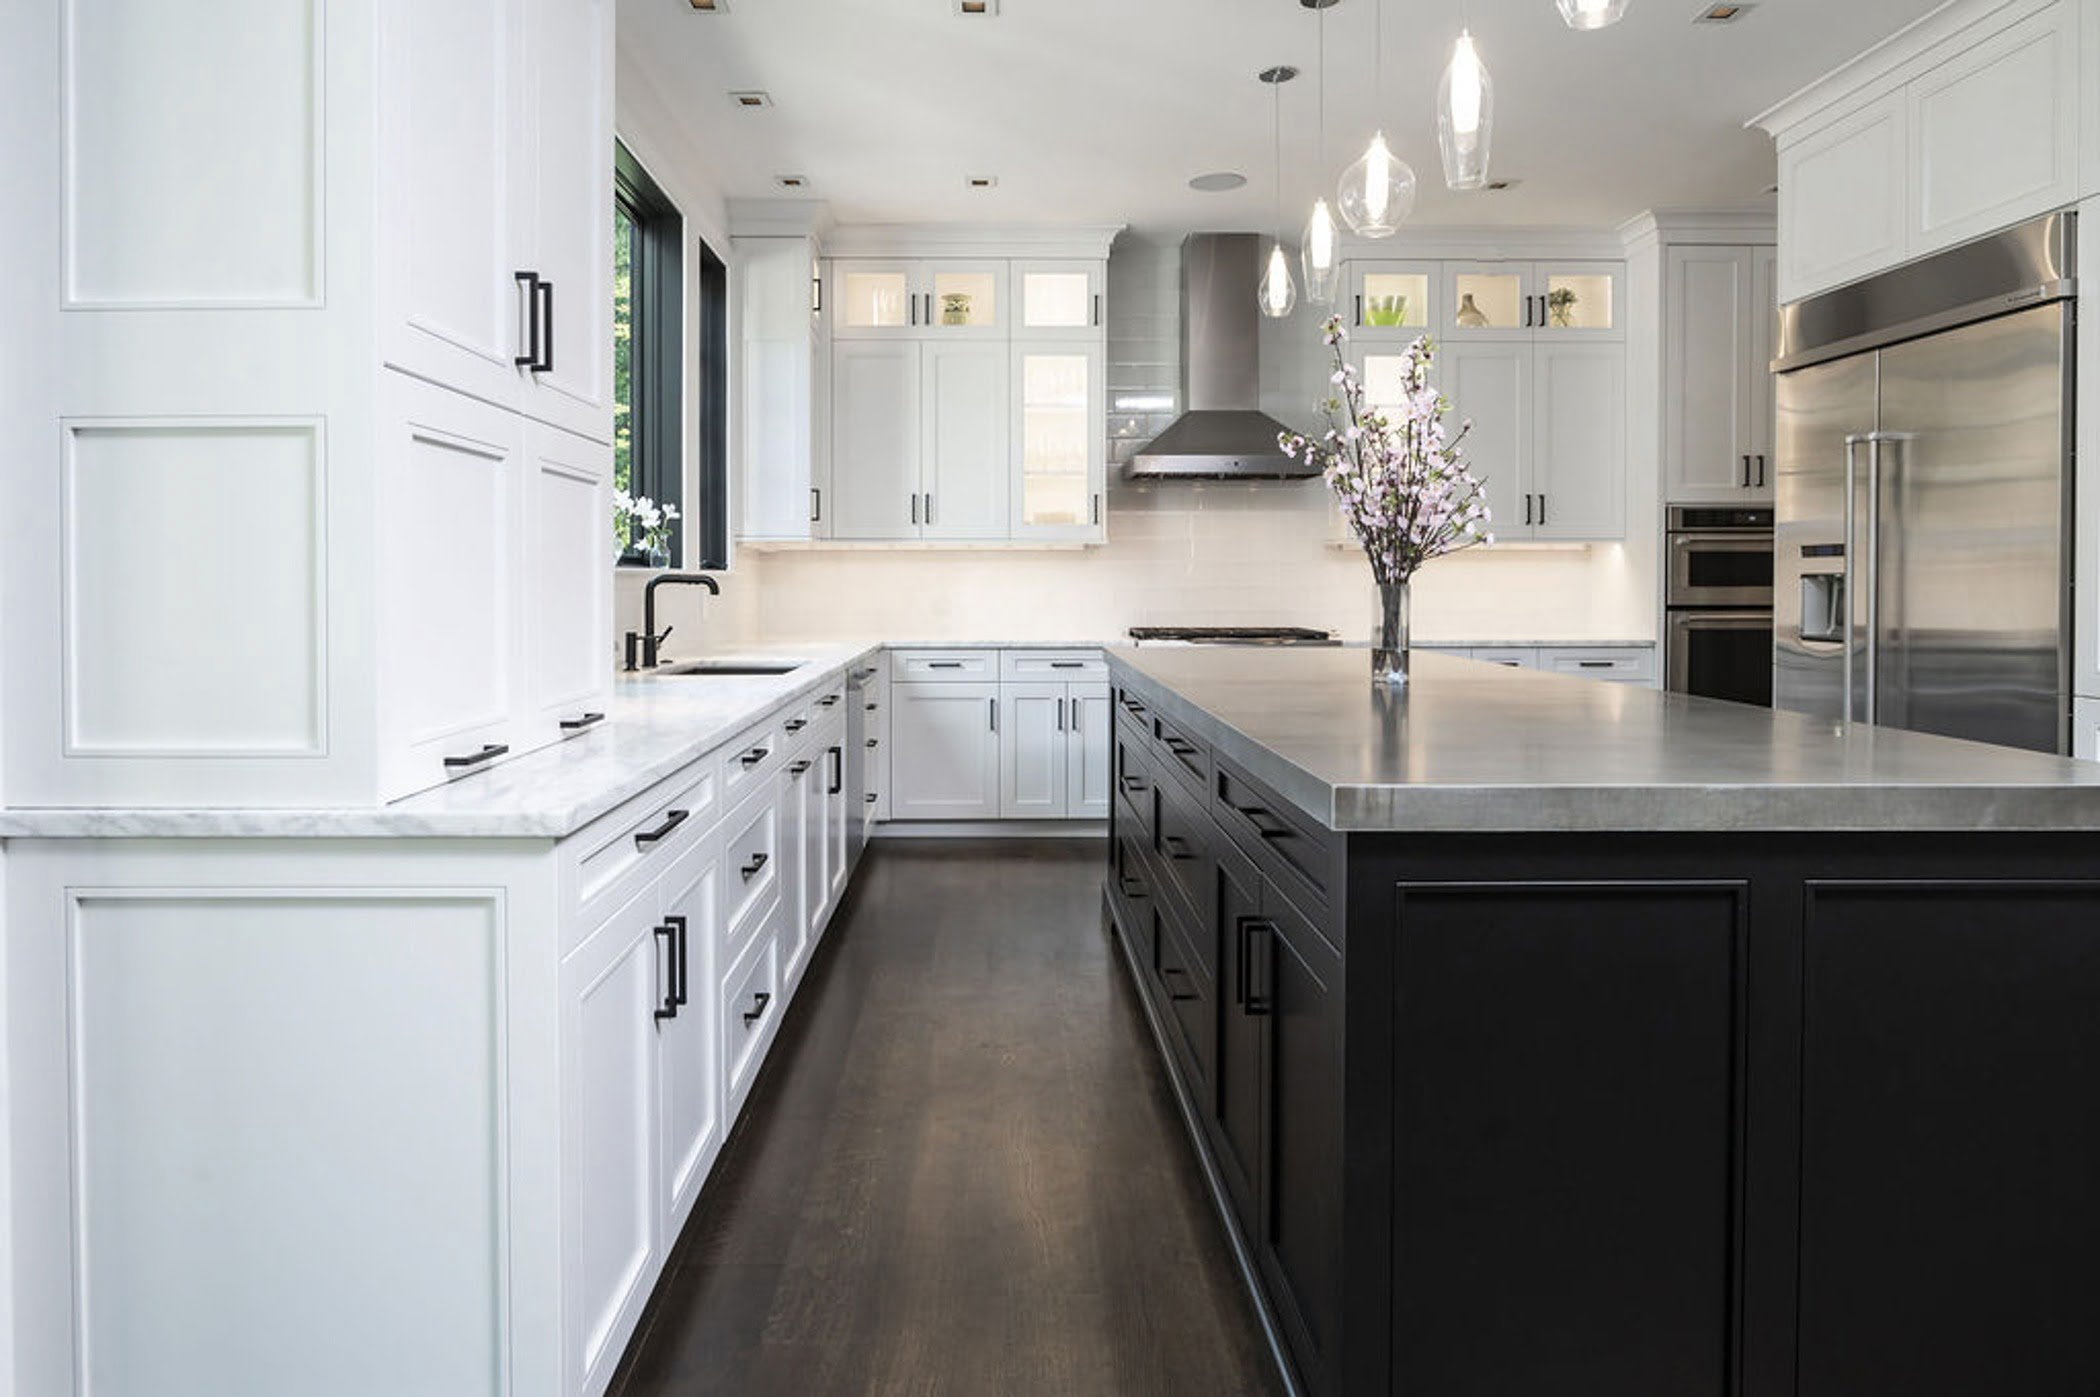 Modern kitchen remodel with an open concept layout including white cabinetry, marble countertop and a dark wood center island (Different view)